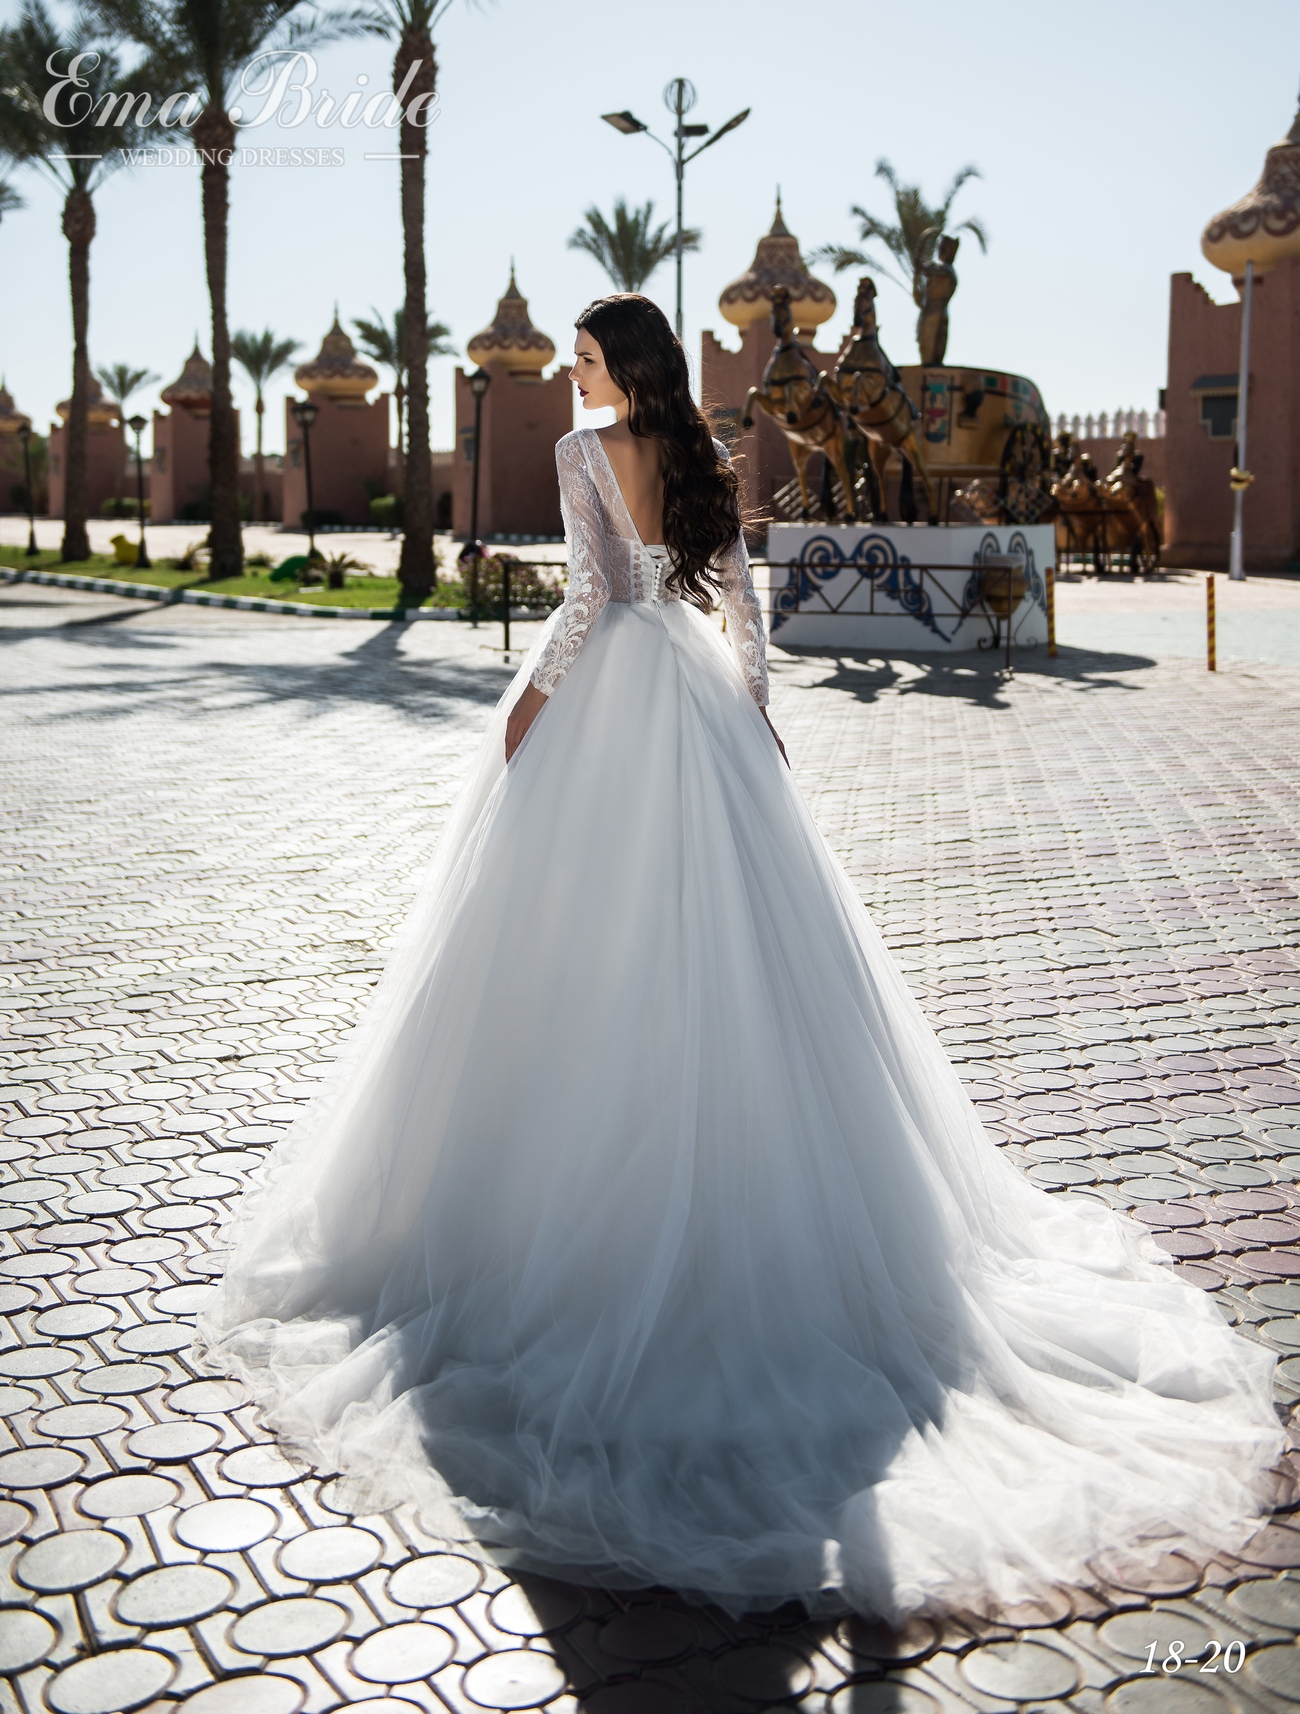 Wedding dress 18-20 wholesale-2